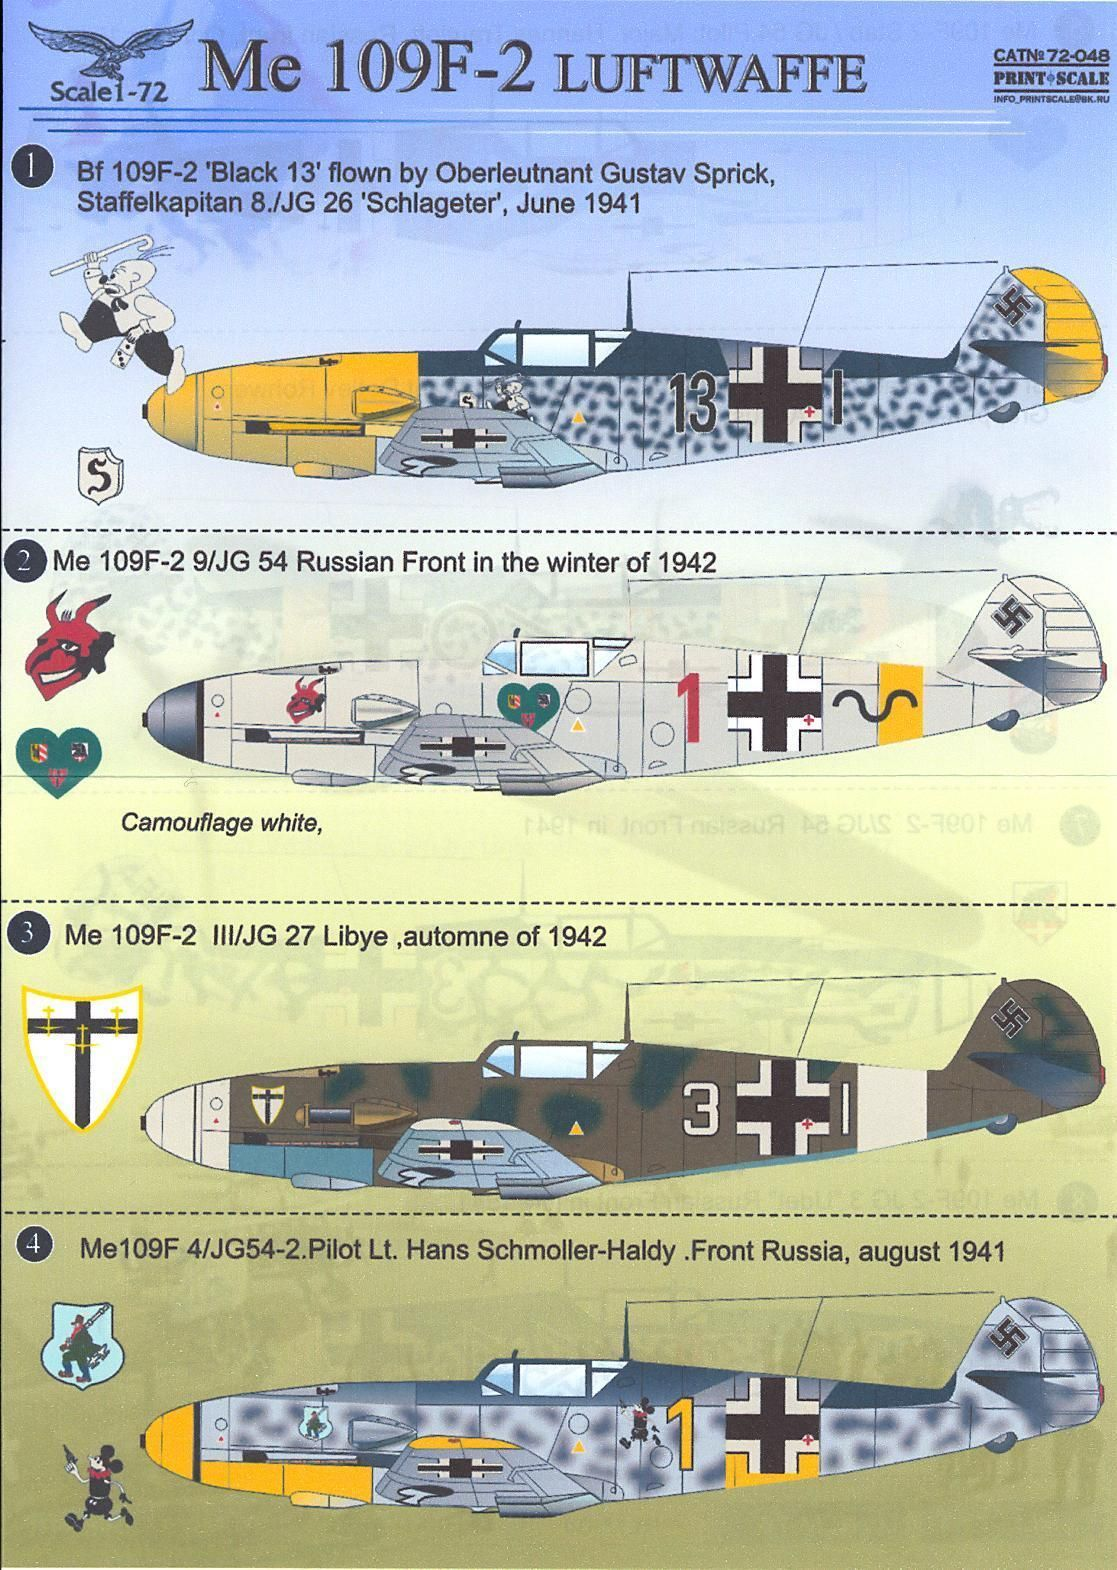 8 5 Print Scale Decals 1 72 Messerschmitt Bf 109f 2 German Fighter Ebay Collectibles Messerschmitt Luftwaffe Planes Wwii Airplane